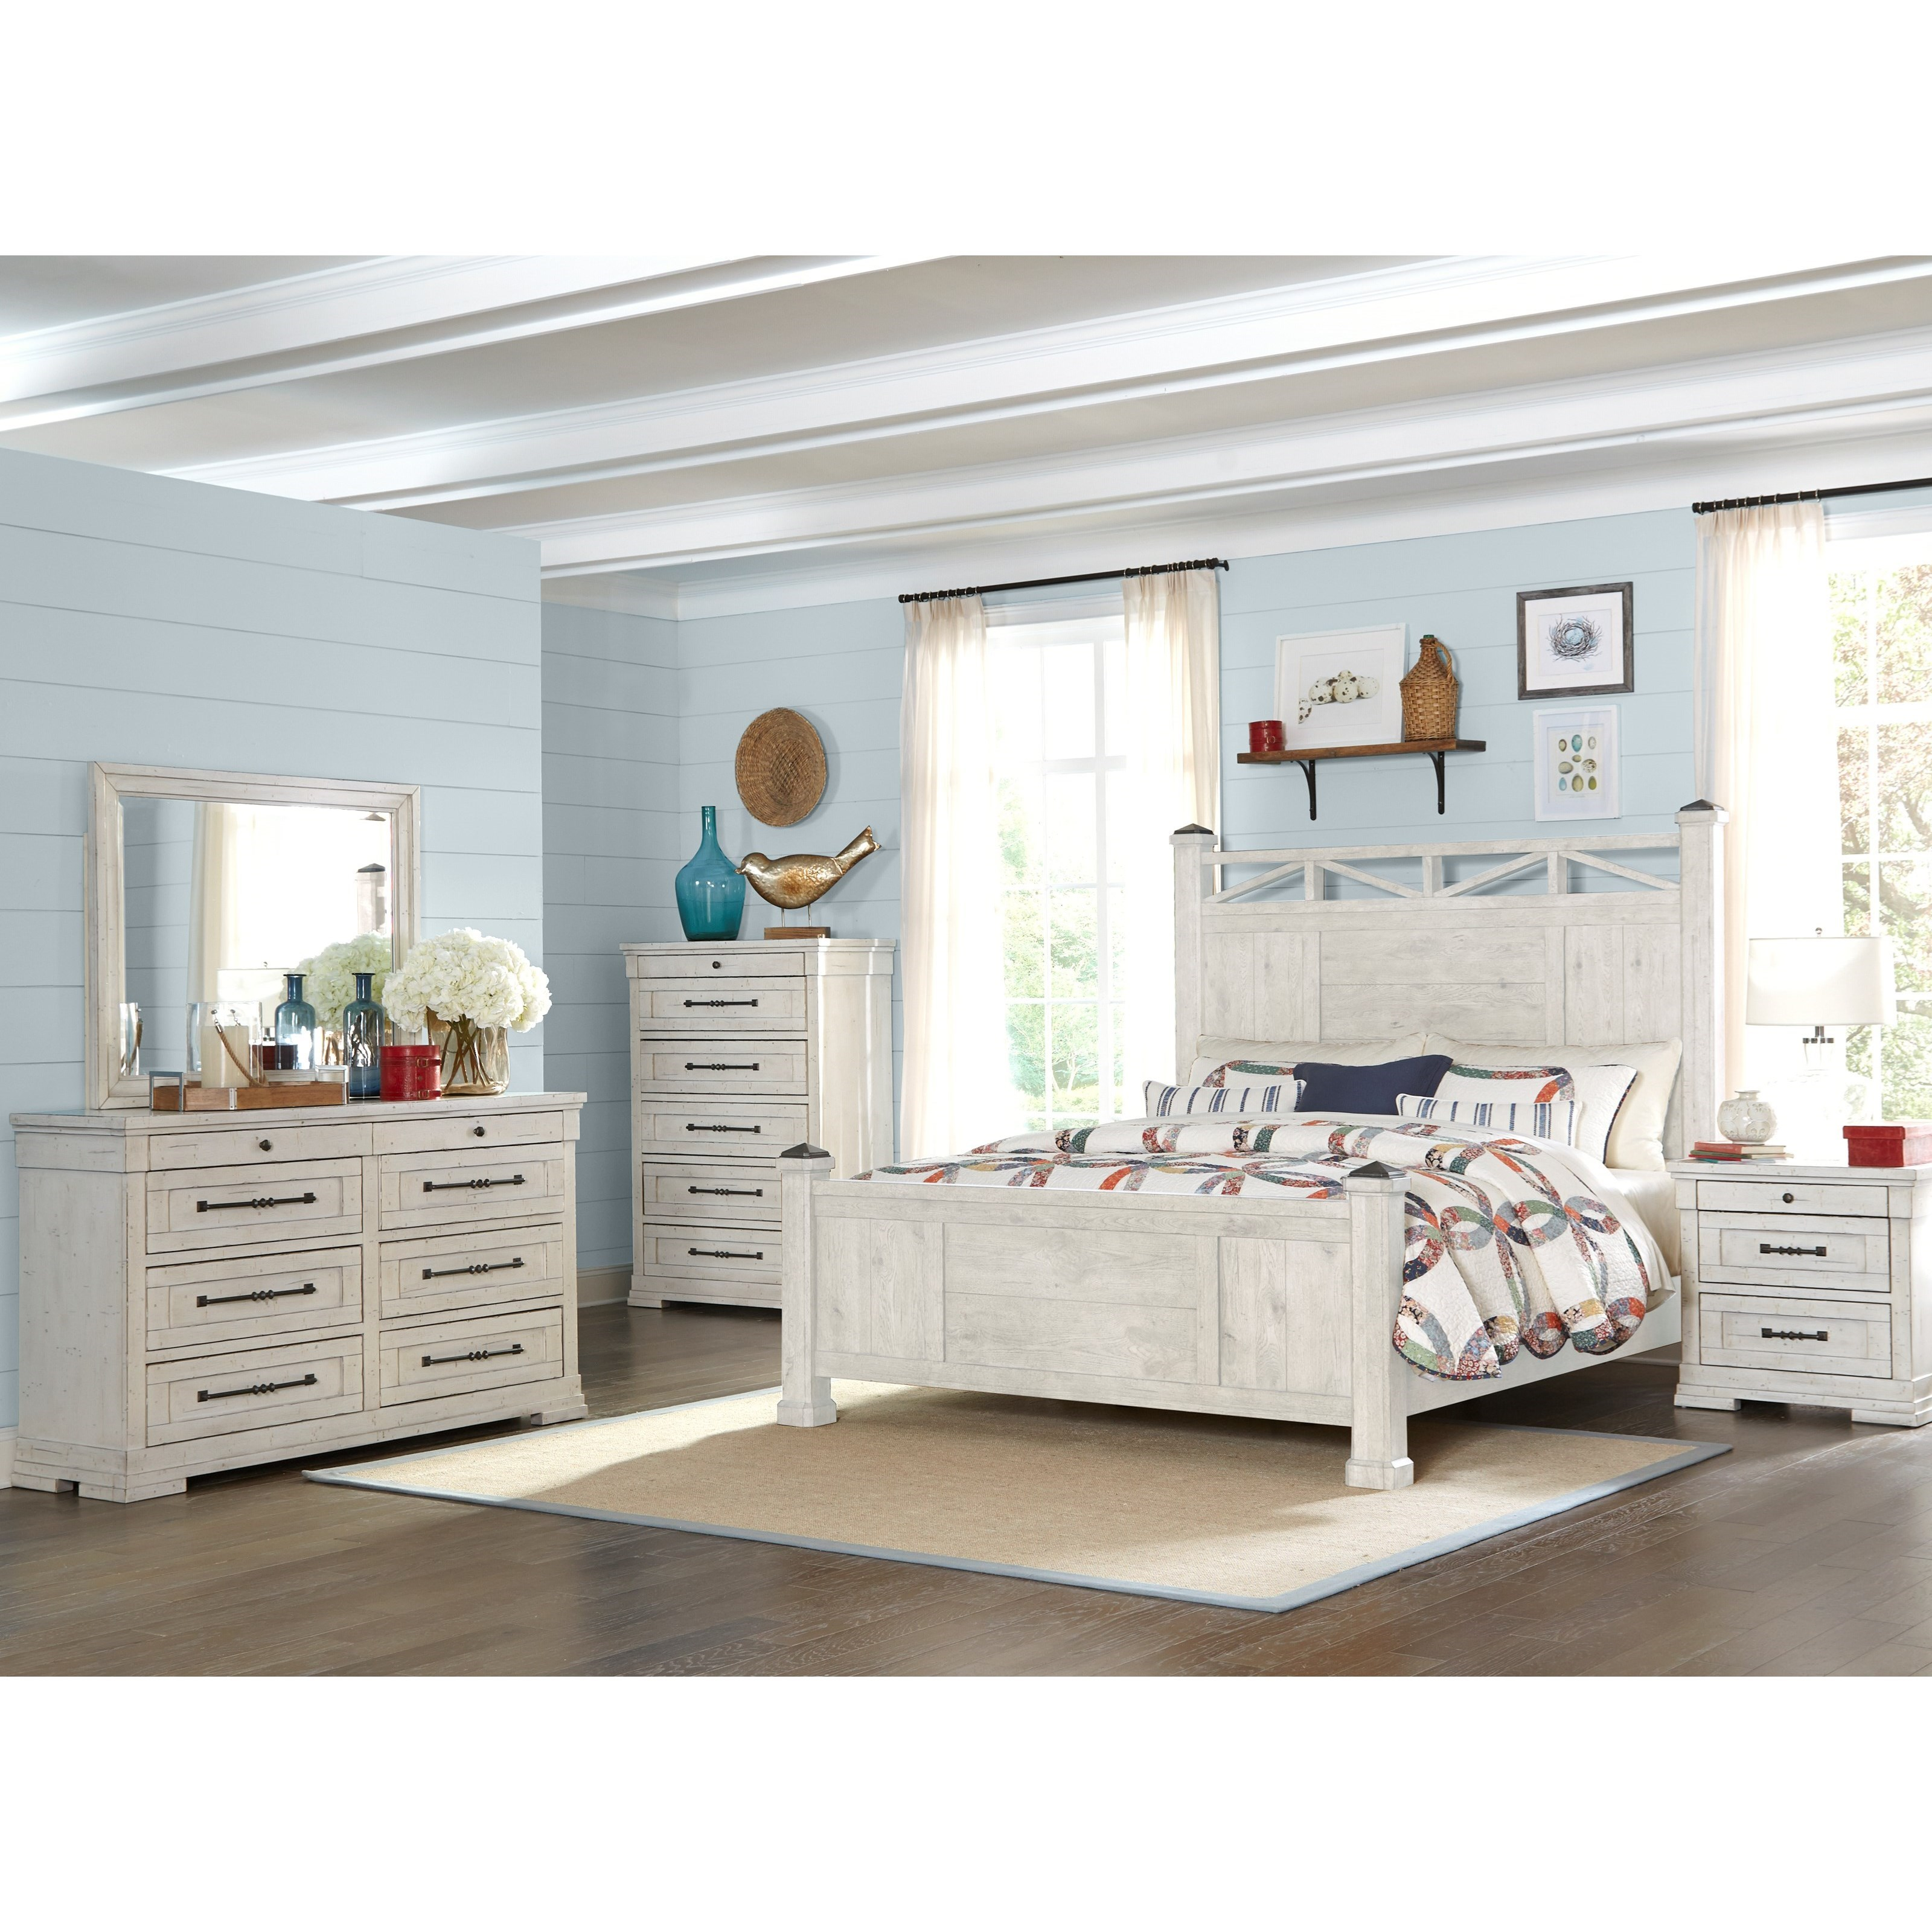 Trisha yearwood home collection by klaussner coming home for Home furnishing collection